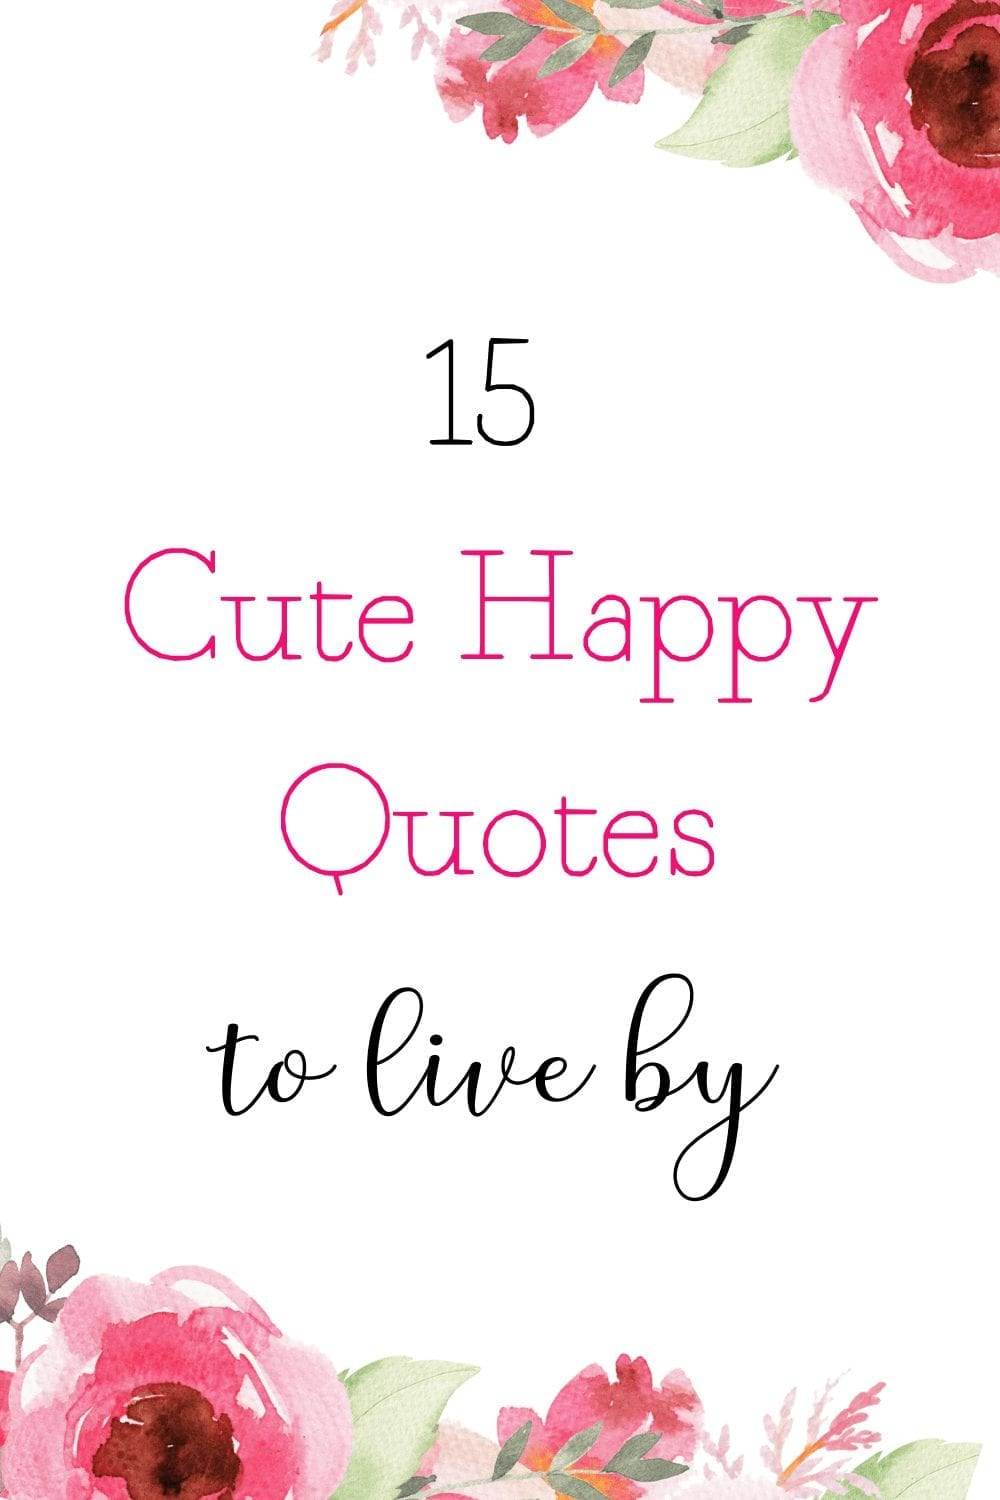 Cute happy quotes plus free printable quotes PDF download list